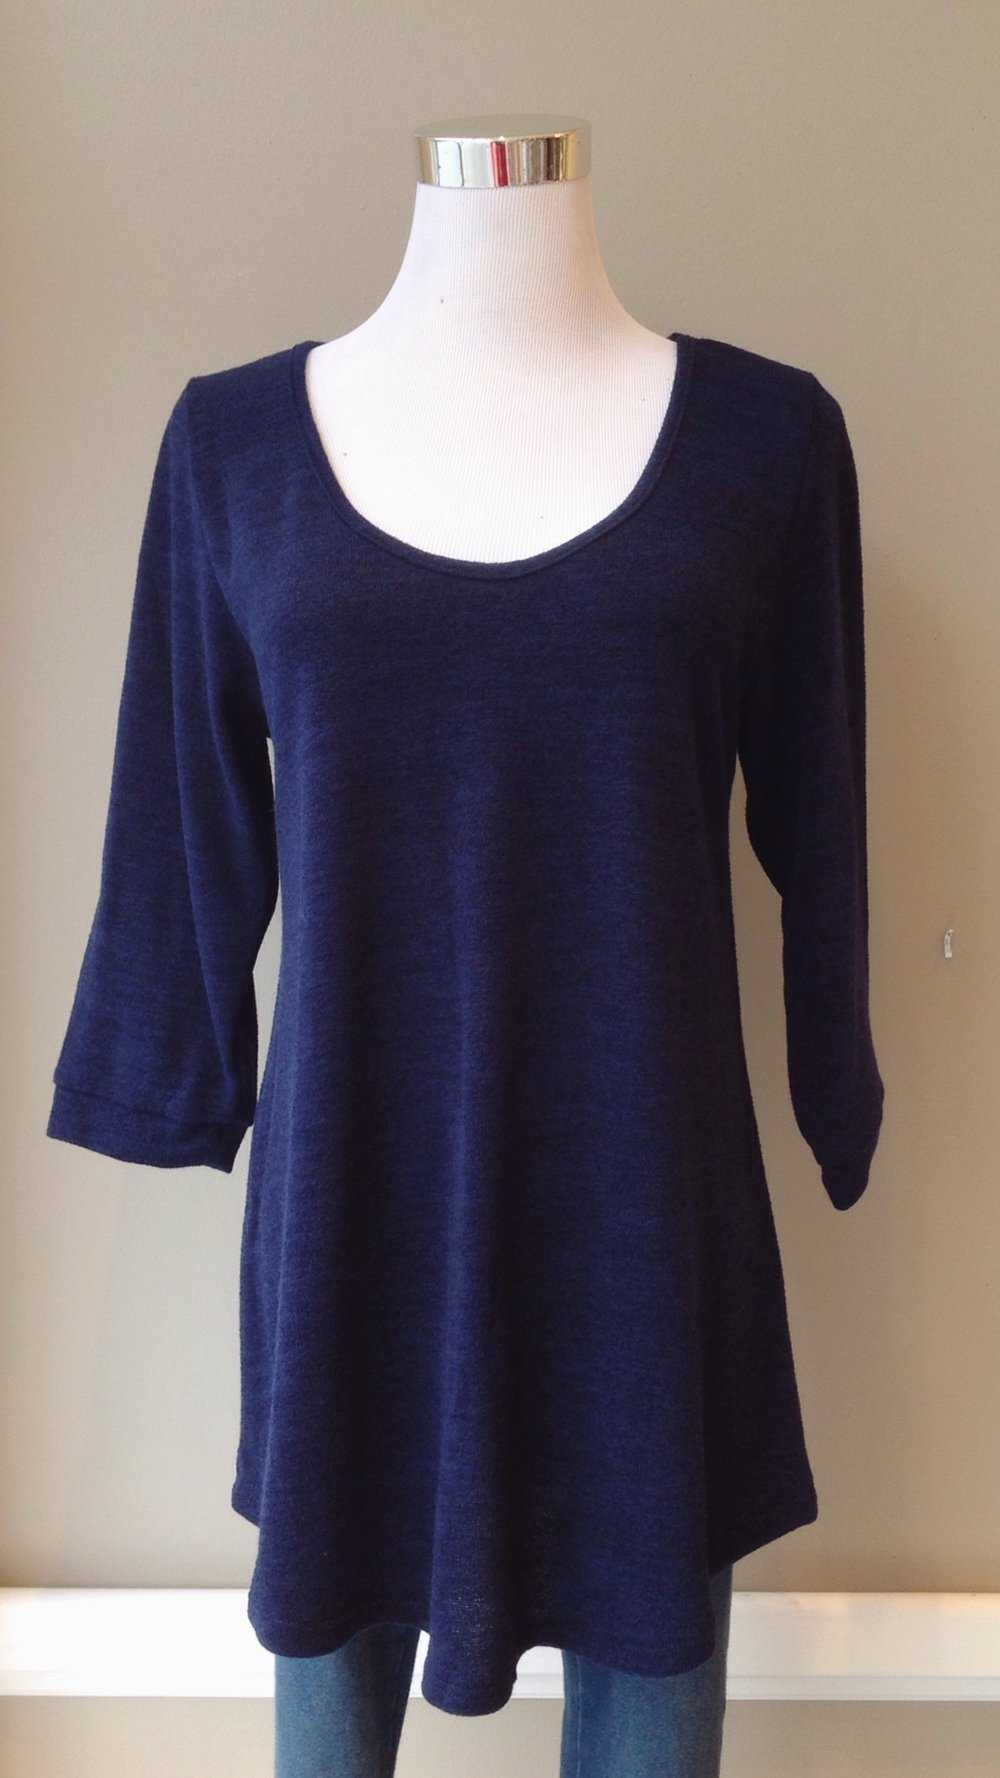 Navy scoop neck sweater with 3/4 sleeves, $30